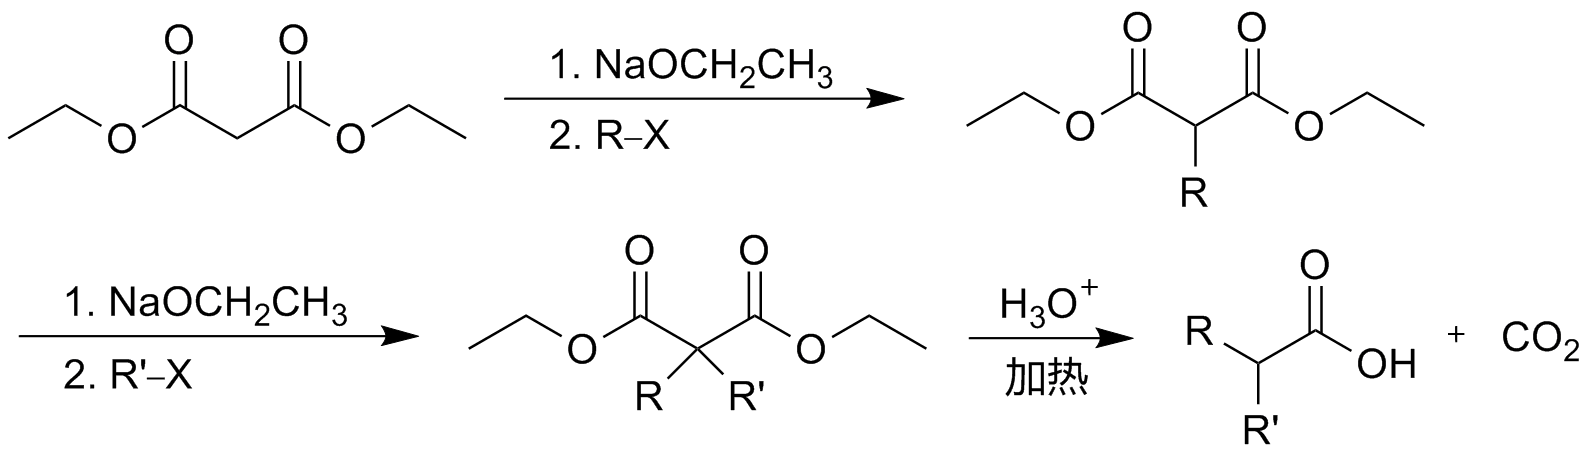 a report on the preparation and purification of an ester The general formula of an ester is rcoor' in which r is the alkyl group that comes from the carboxylic acid while r' is the alkyl group that comes from the alcohol and coo is the functional group of the ester known simply as the ester group.